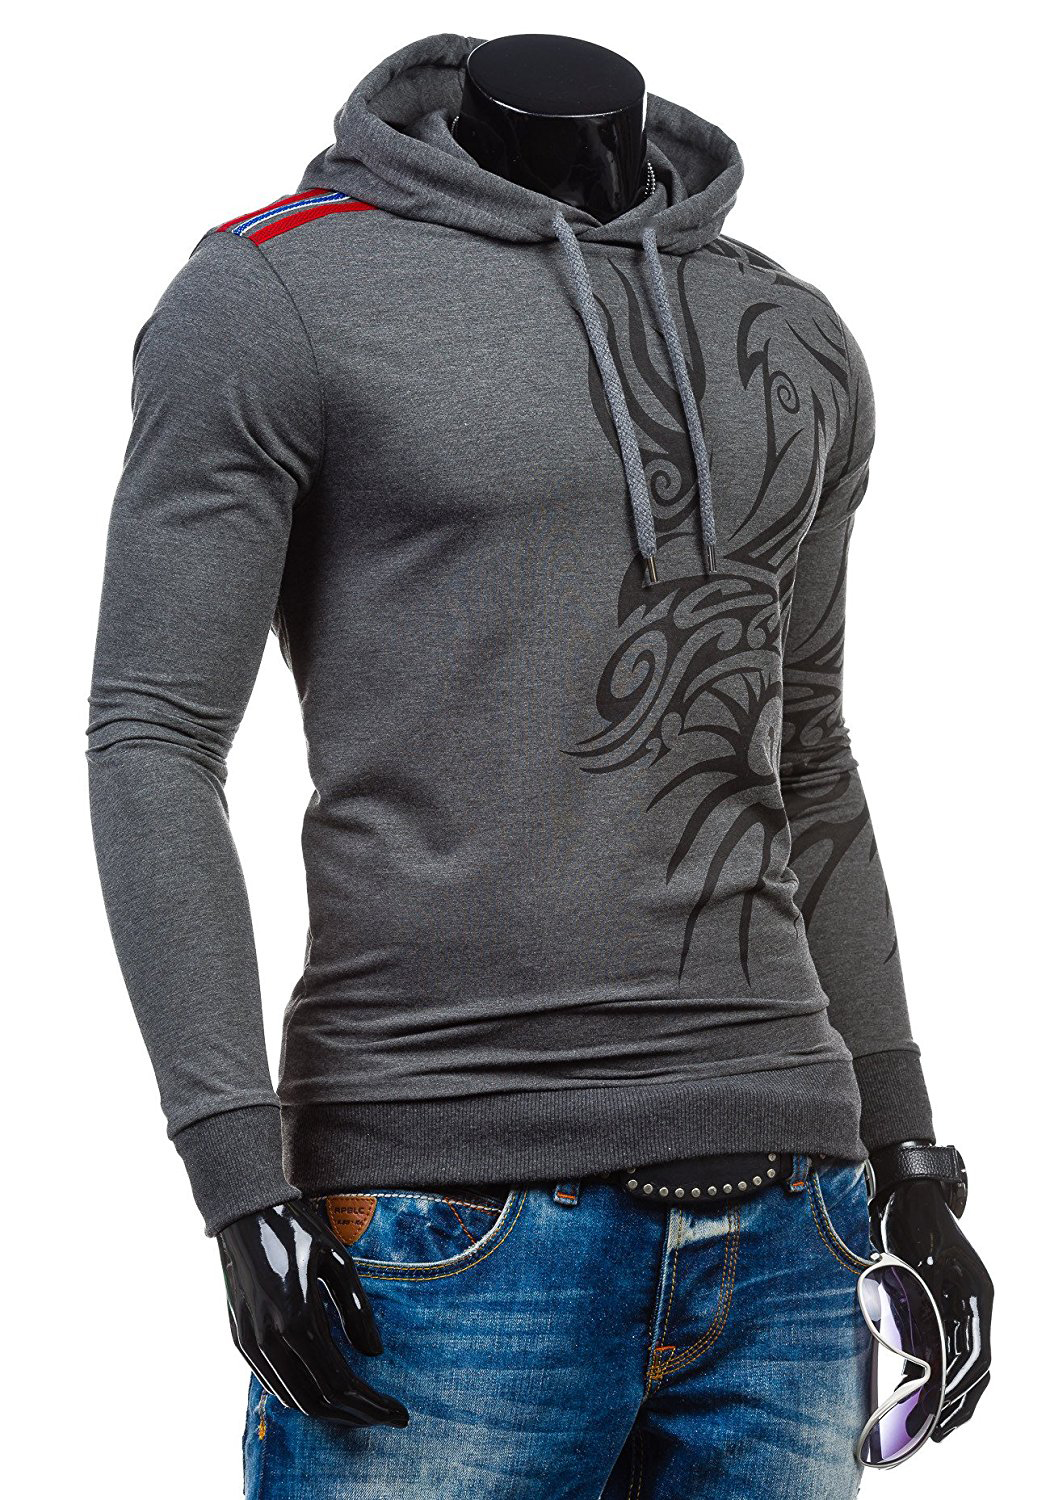 2017 Hoodies Men Hombre Hip Hop Mens Brand Letter Hooded Zipper Hoodie Sweatshirt Slim Fit Men Hoody Large Size 3XL Stylish Men's hoodies HTB18jZ gN3IL1JjSZPfq6ArUVXat